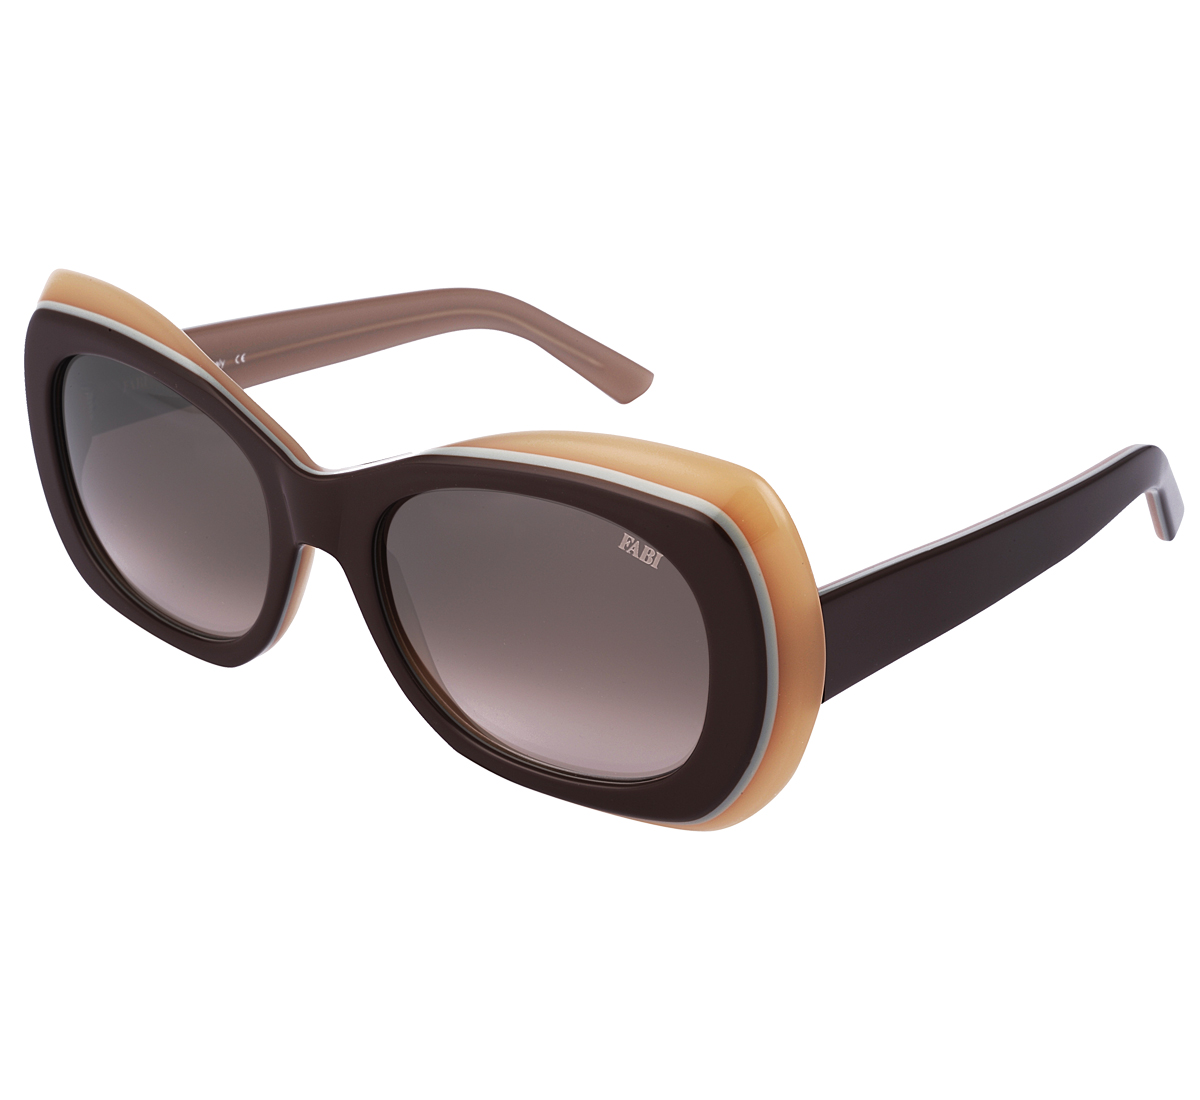 '60s '70s style sunglasses » fabishoes